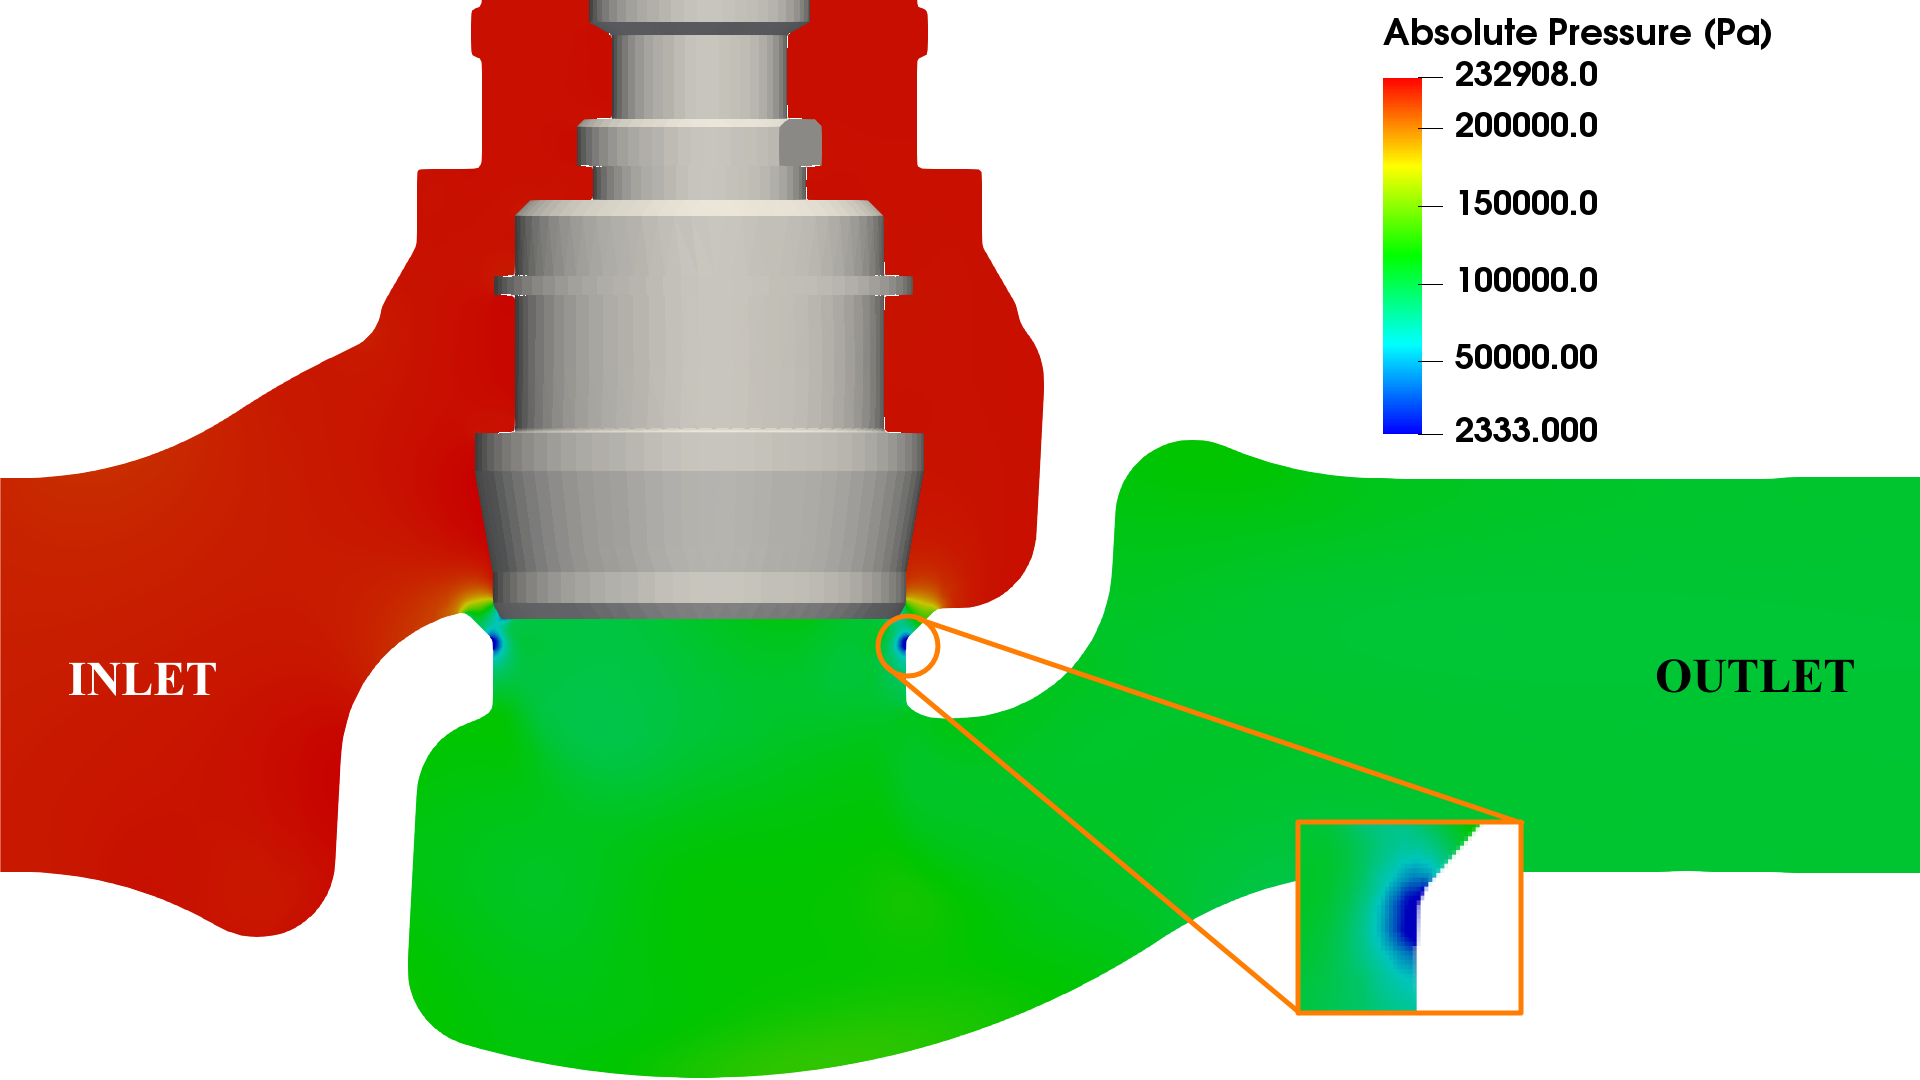 Valve cavitation CFD - outlet pressure 1 bar